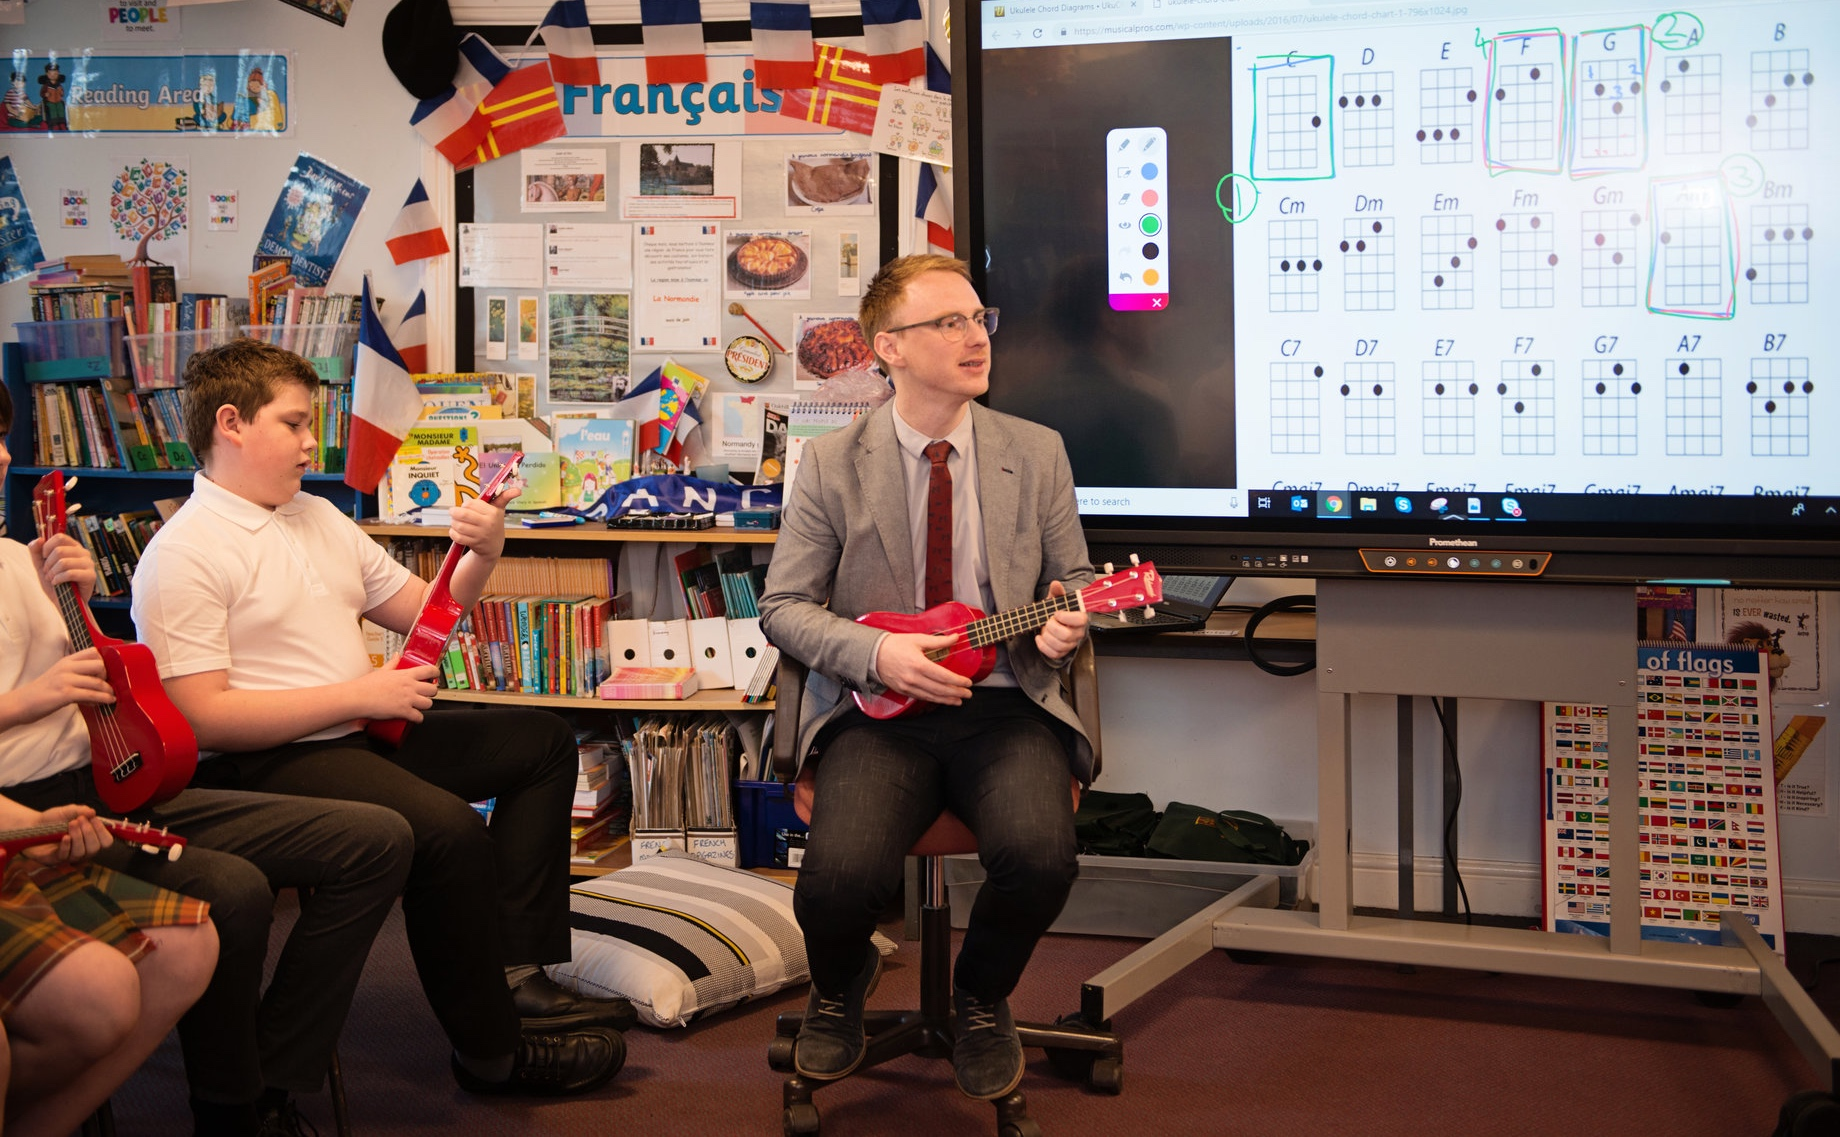 Promethean has launched the #ClassroomStory competition to share treasured teaching memories